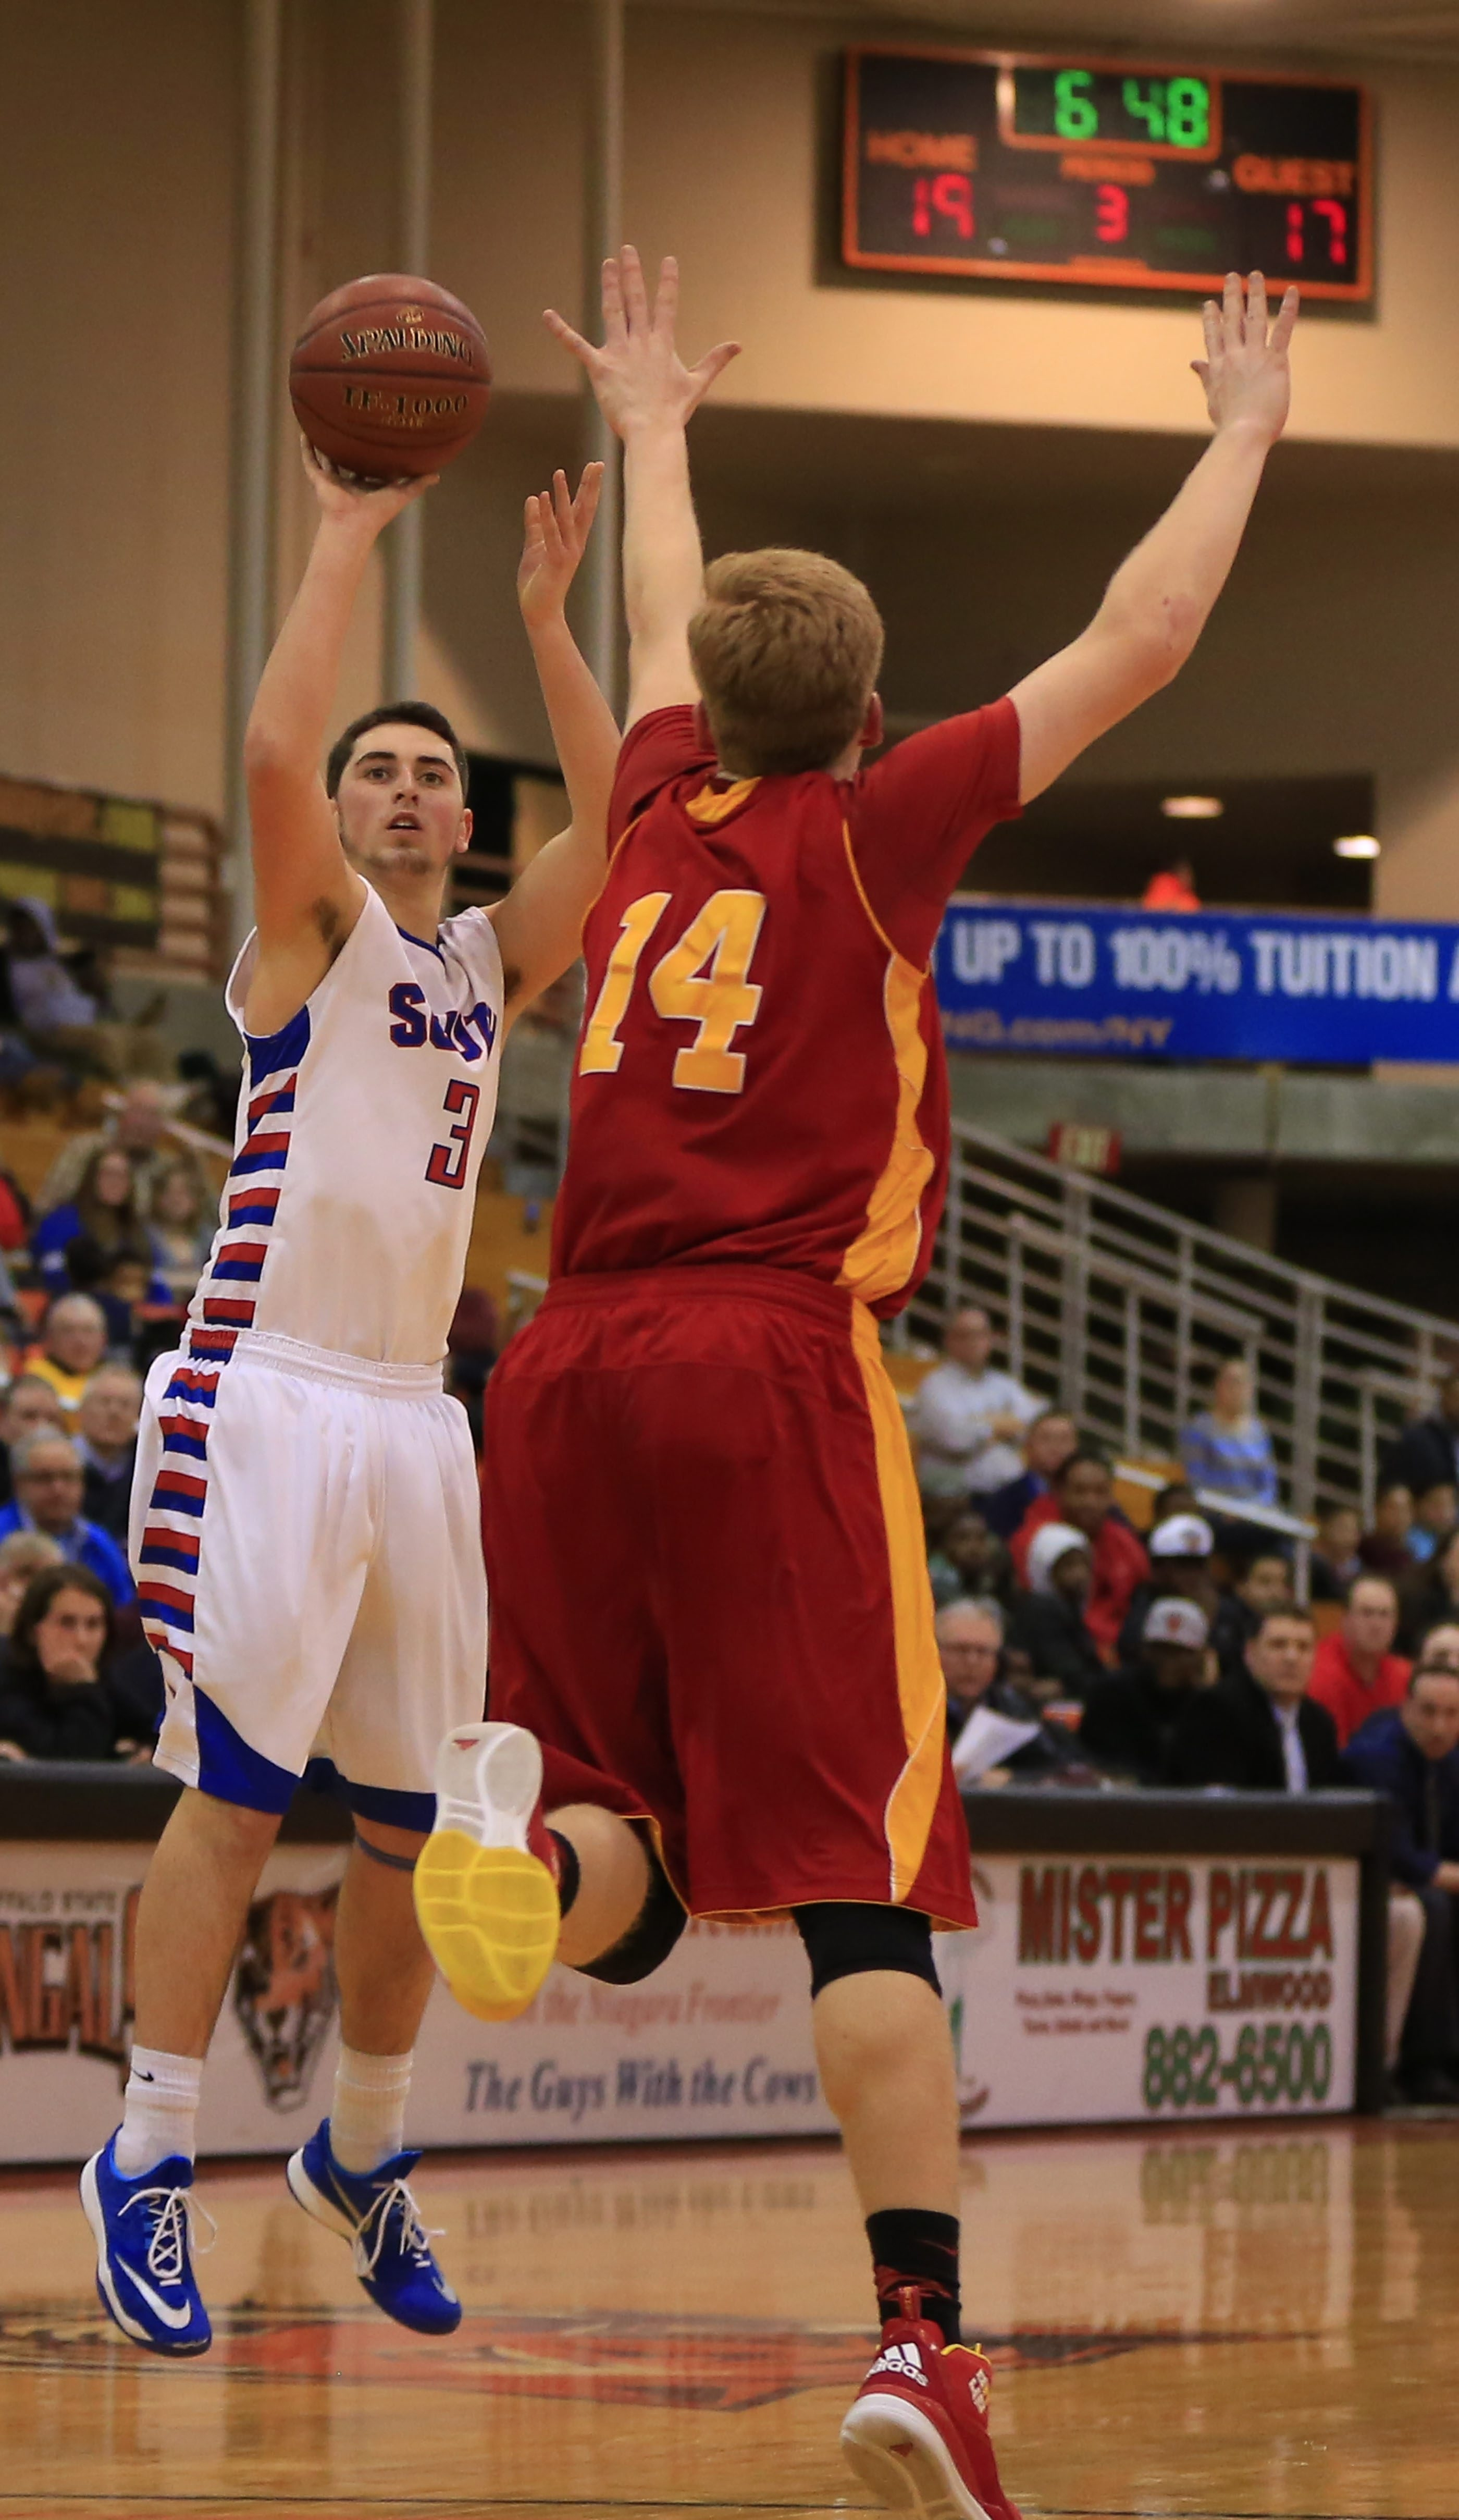 Williamsville South's Sam Castronova shoots against Olean in the second half of Tuesday's game.